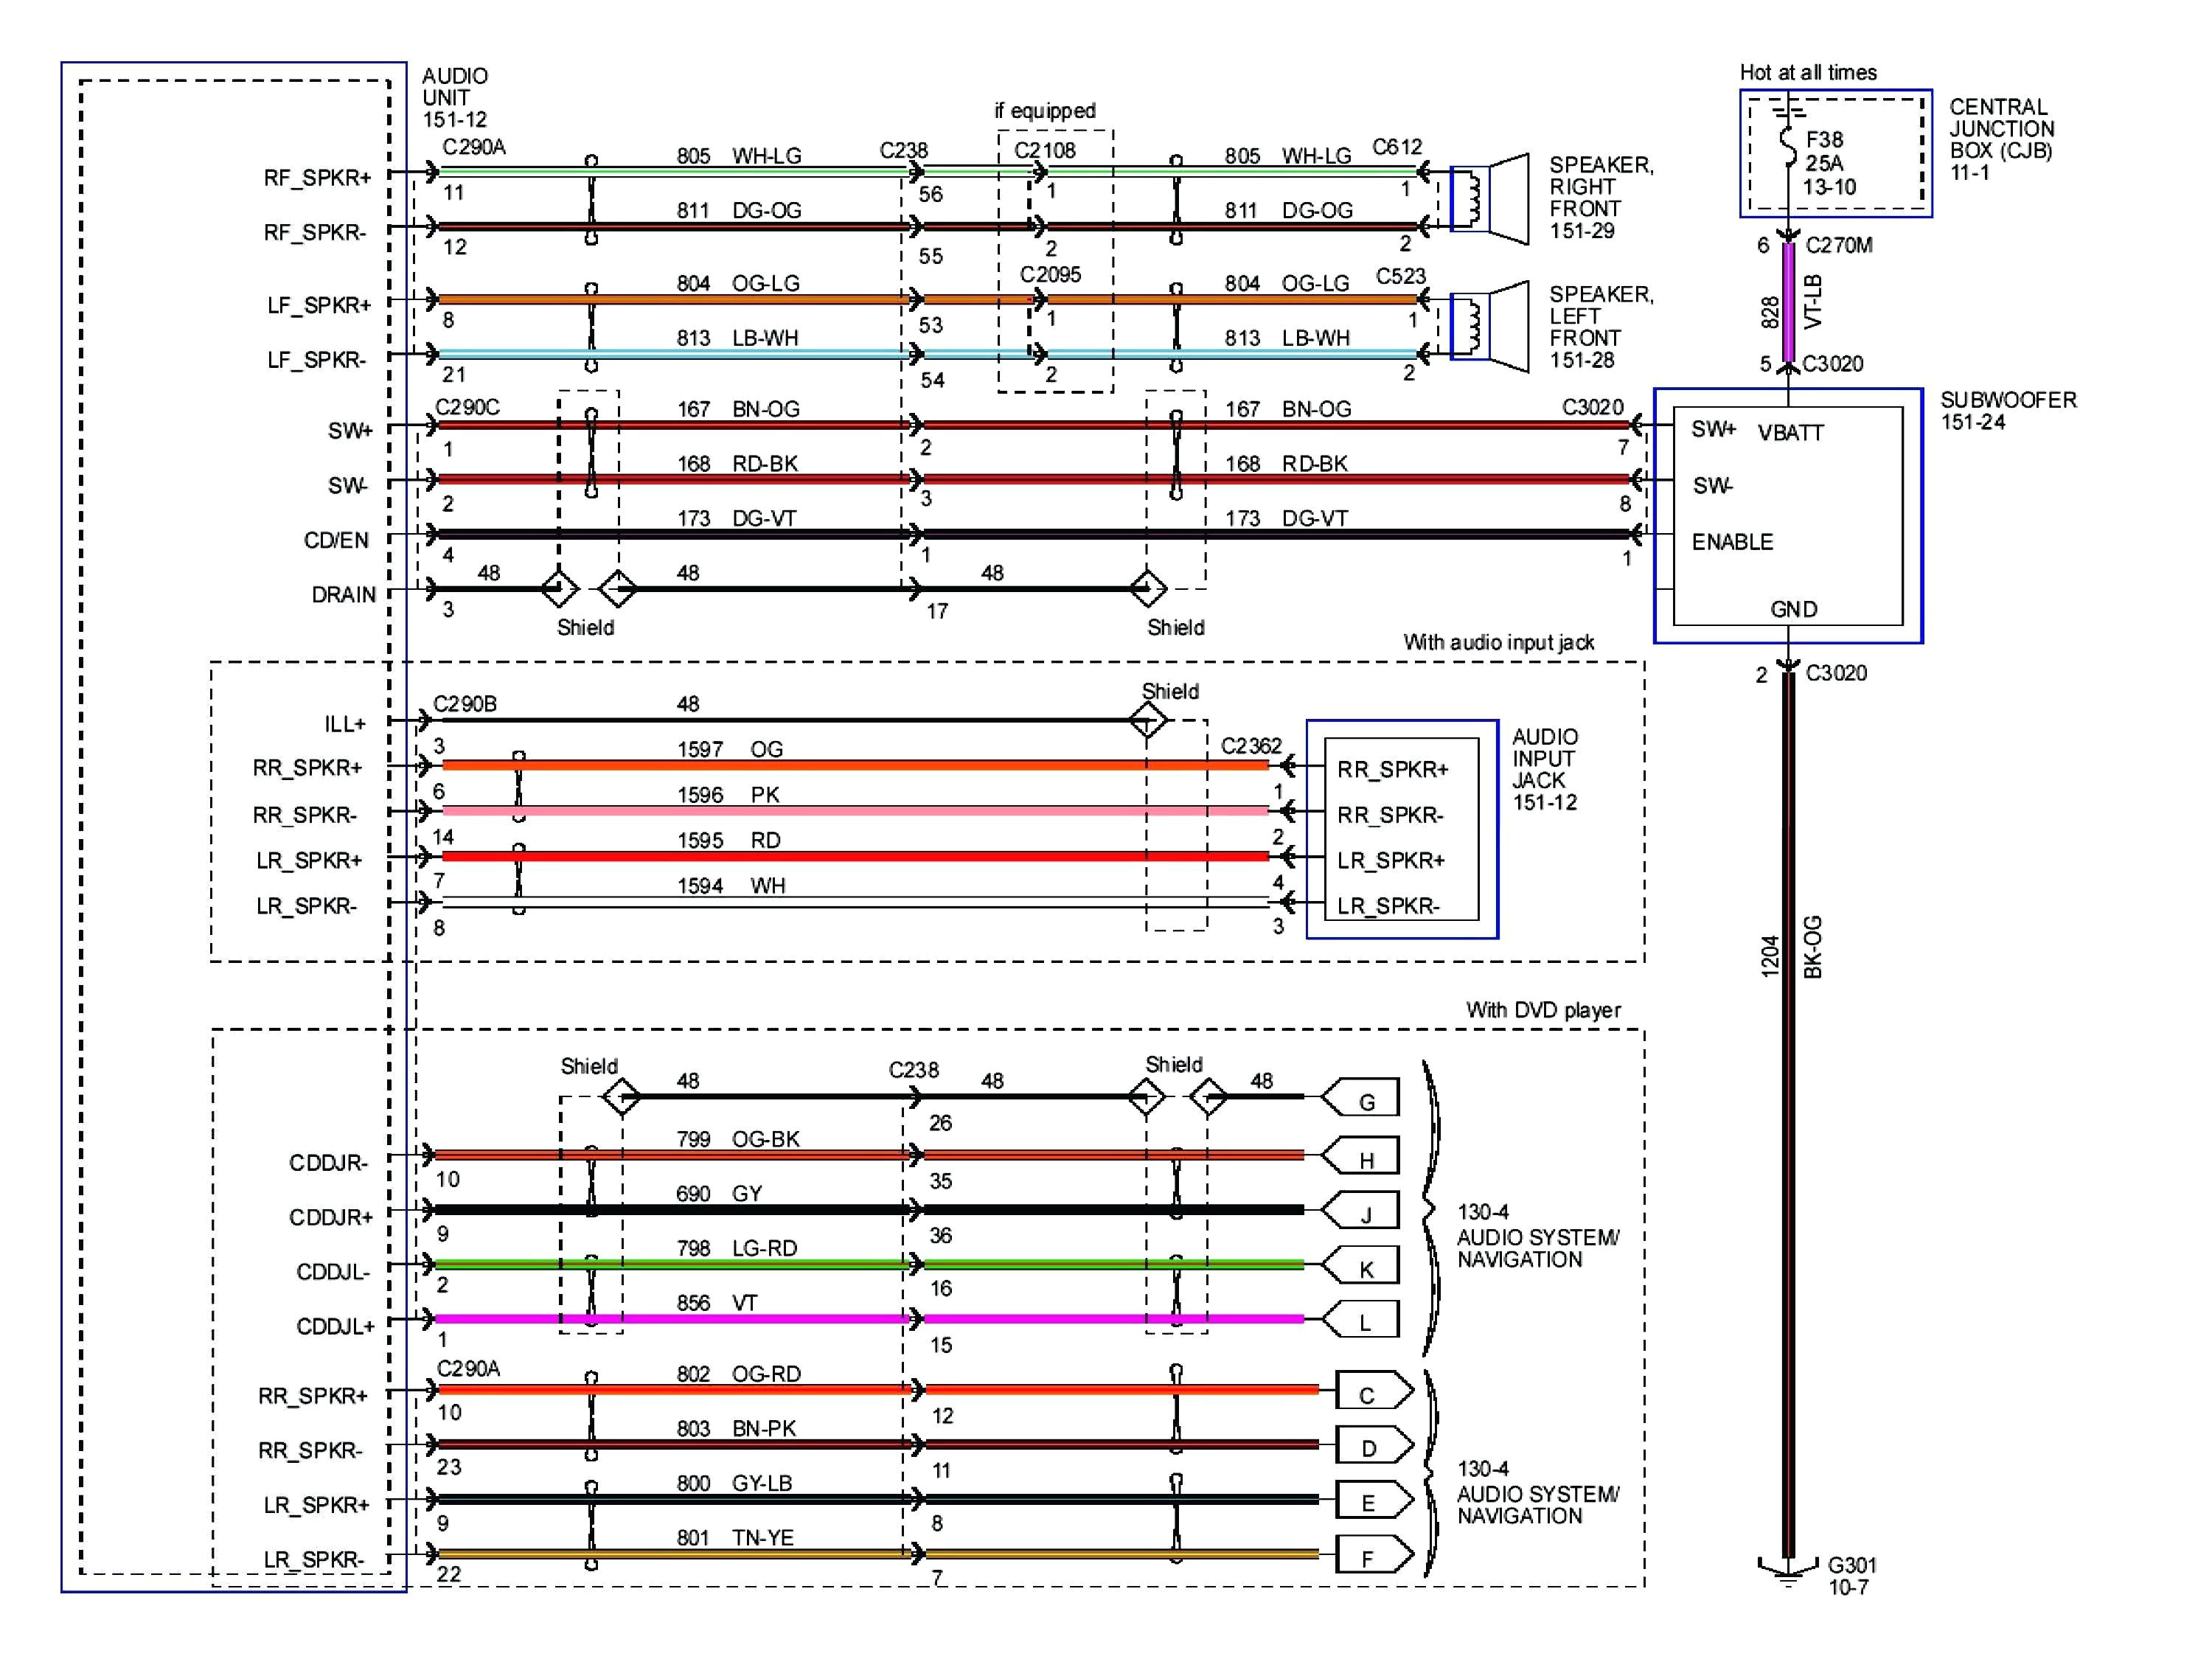 2005 ford five hundred radio wiring diagram fresh 2005 ford f150 radio wiring diagram download of 2005 ford five hundred radio wiring diagram jpg